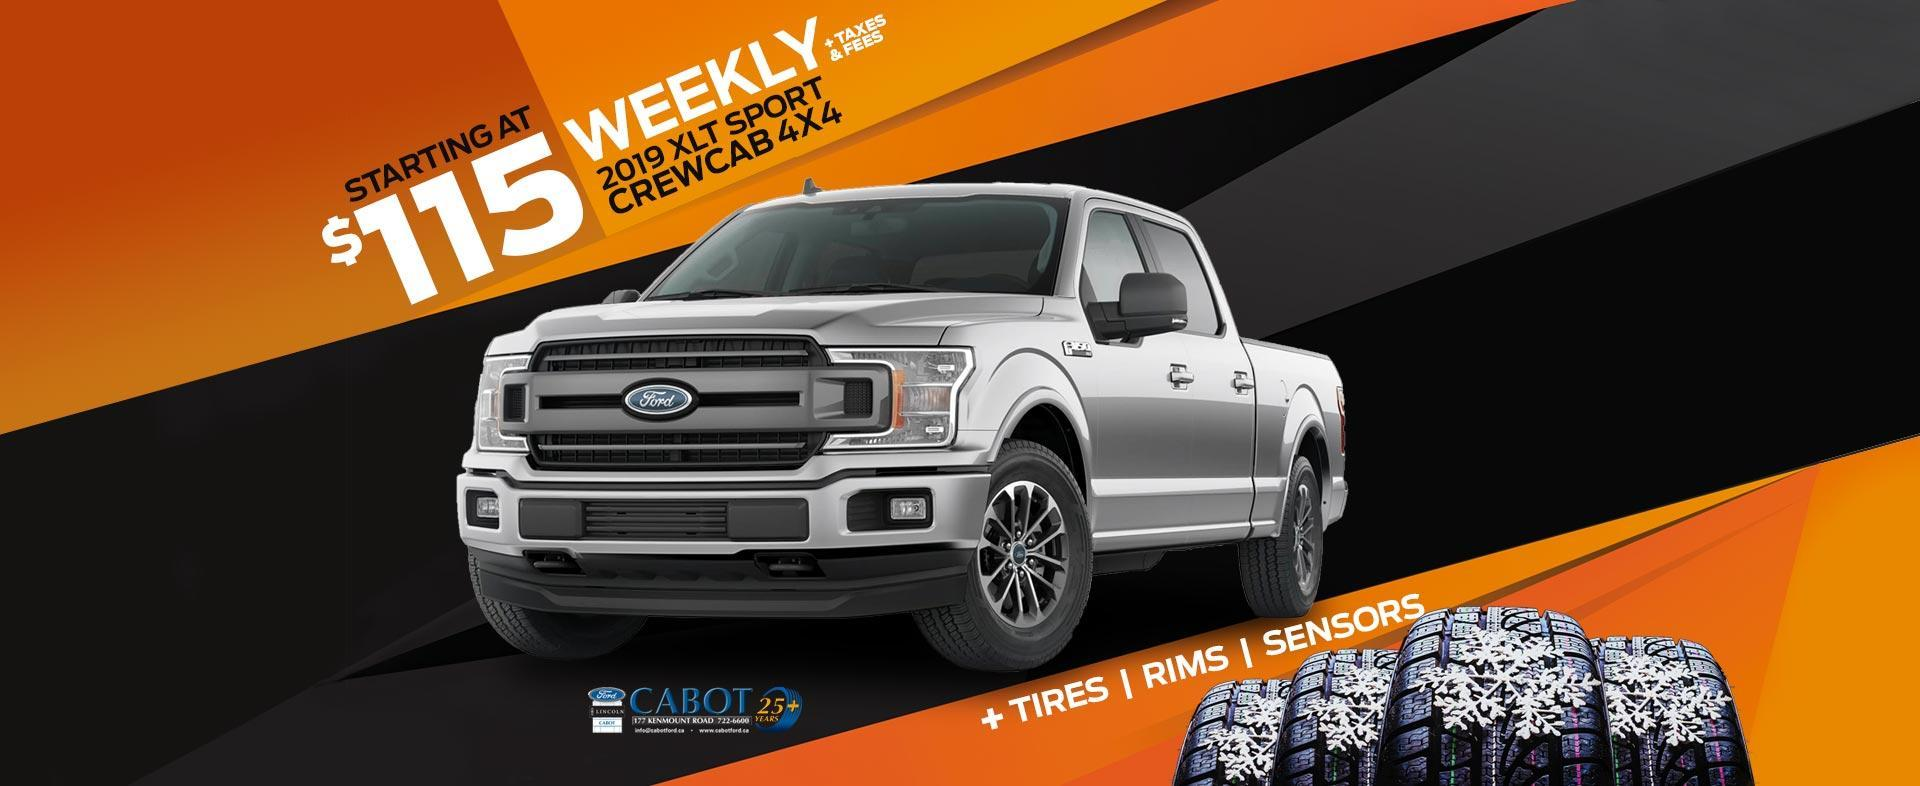 2019 Ford F-150 XLT Sport CrewCab 4x4 with the 2.7 L EcoBoost engine for just $115 weekly, plus taxes and fees! Includes the Winter Performance Package at no extra charge!